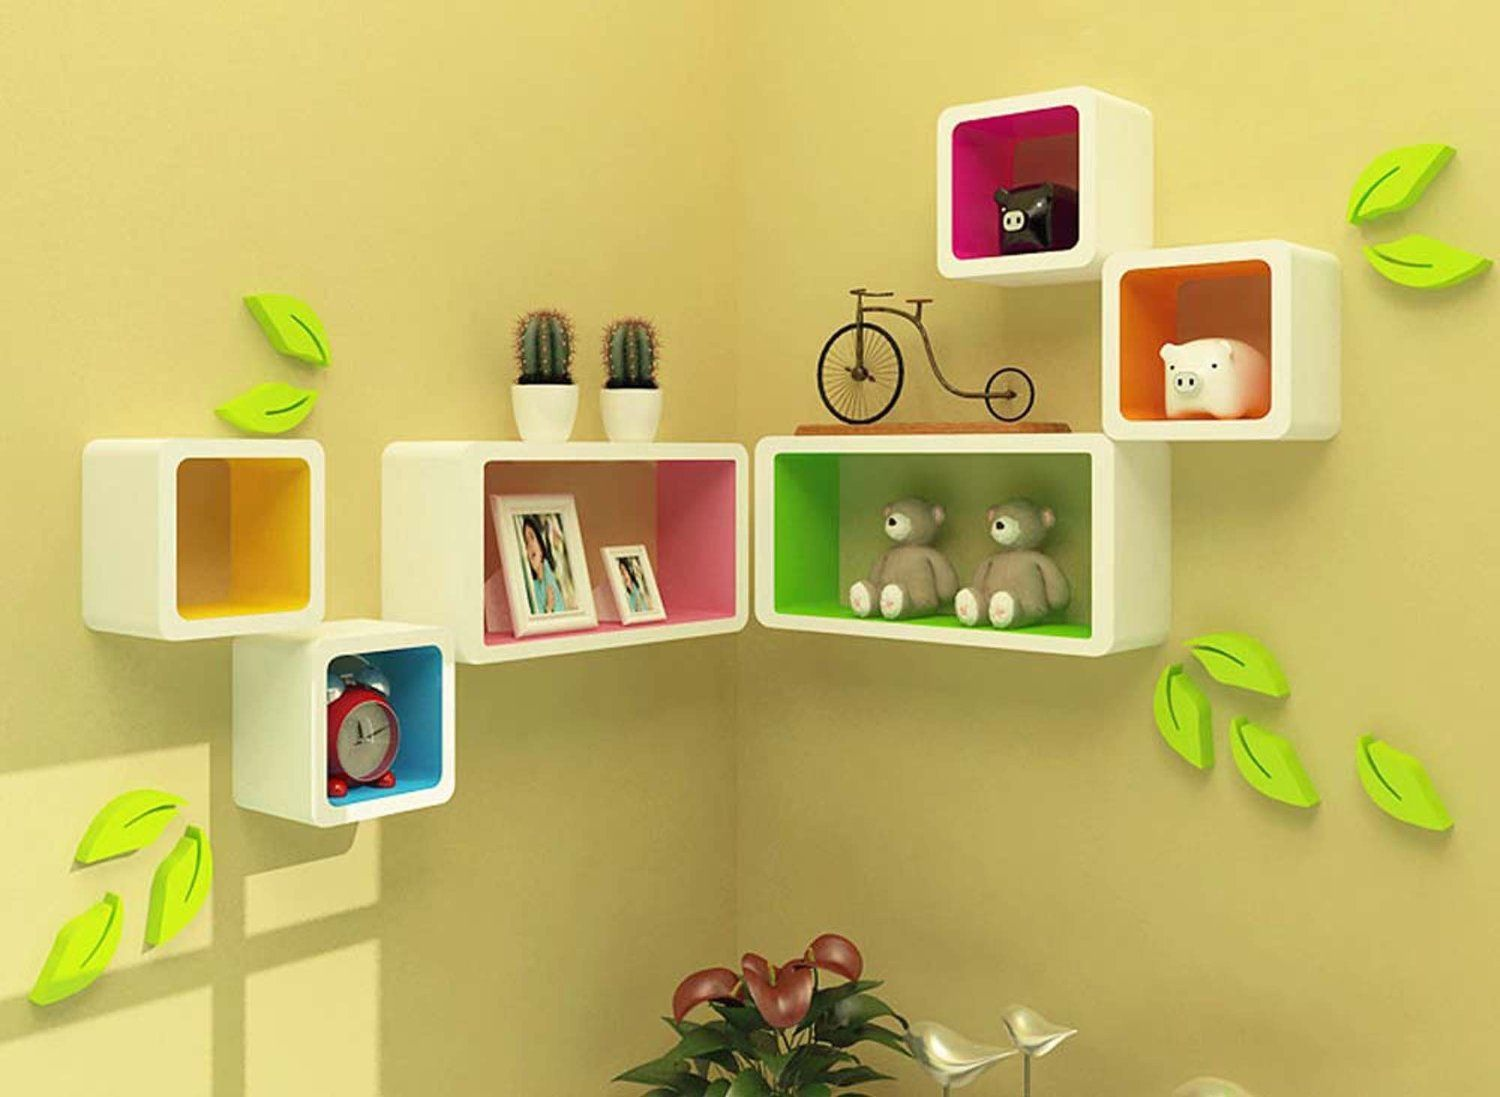 Amazon.com - Zjchao Decorative Wall Floating Cube Storage DIY ...